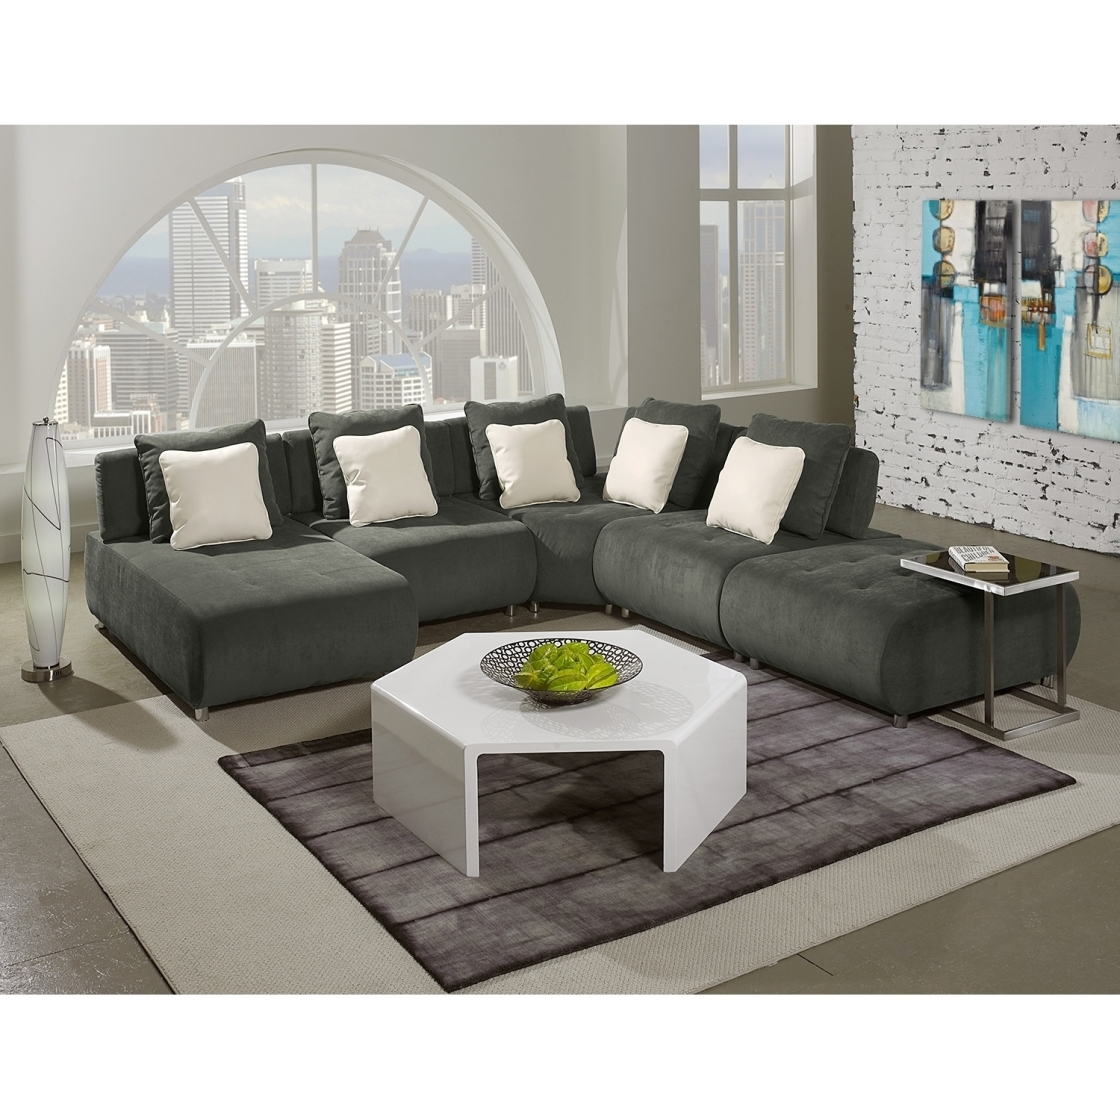 Latest Trend Of Small U Shaped Sectional Sofa 66 For Sectional Sofa pertaining to Small U Shaped Sectional Sofas (Image 5 of 15)